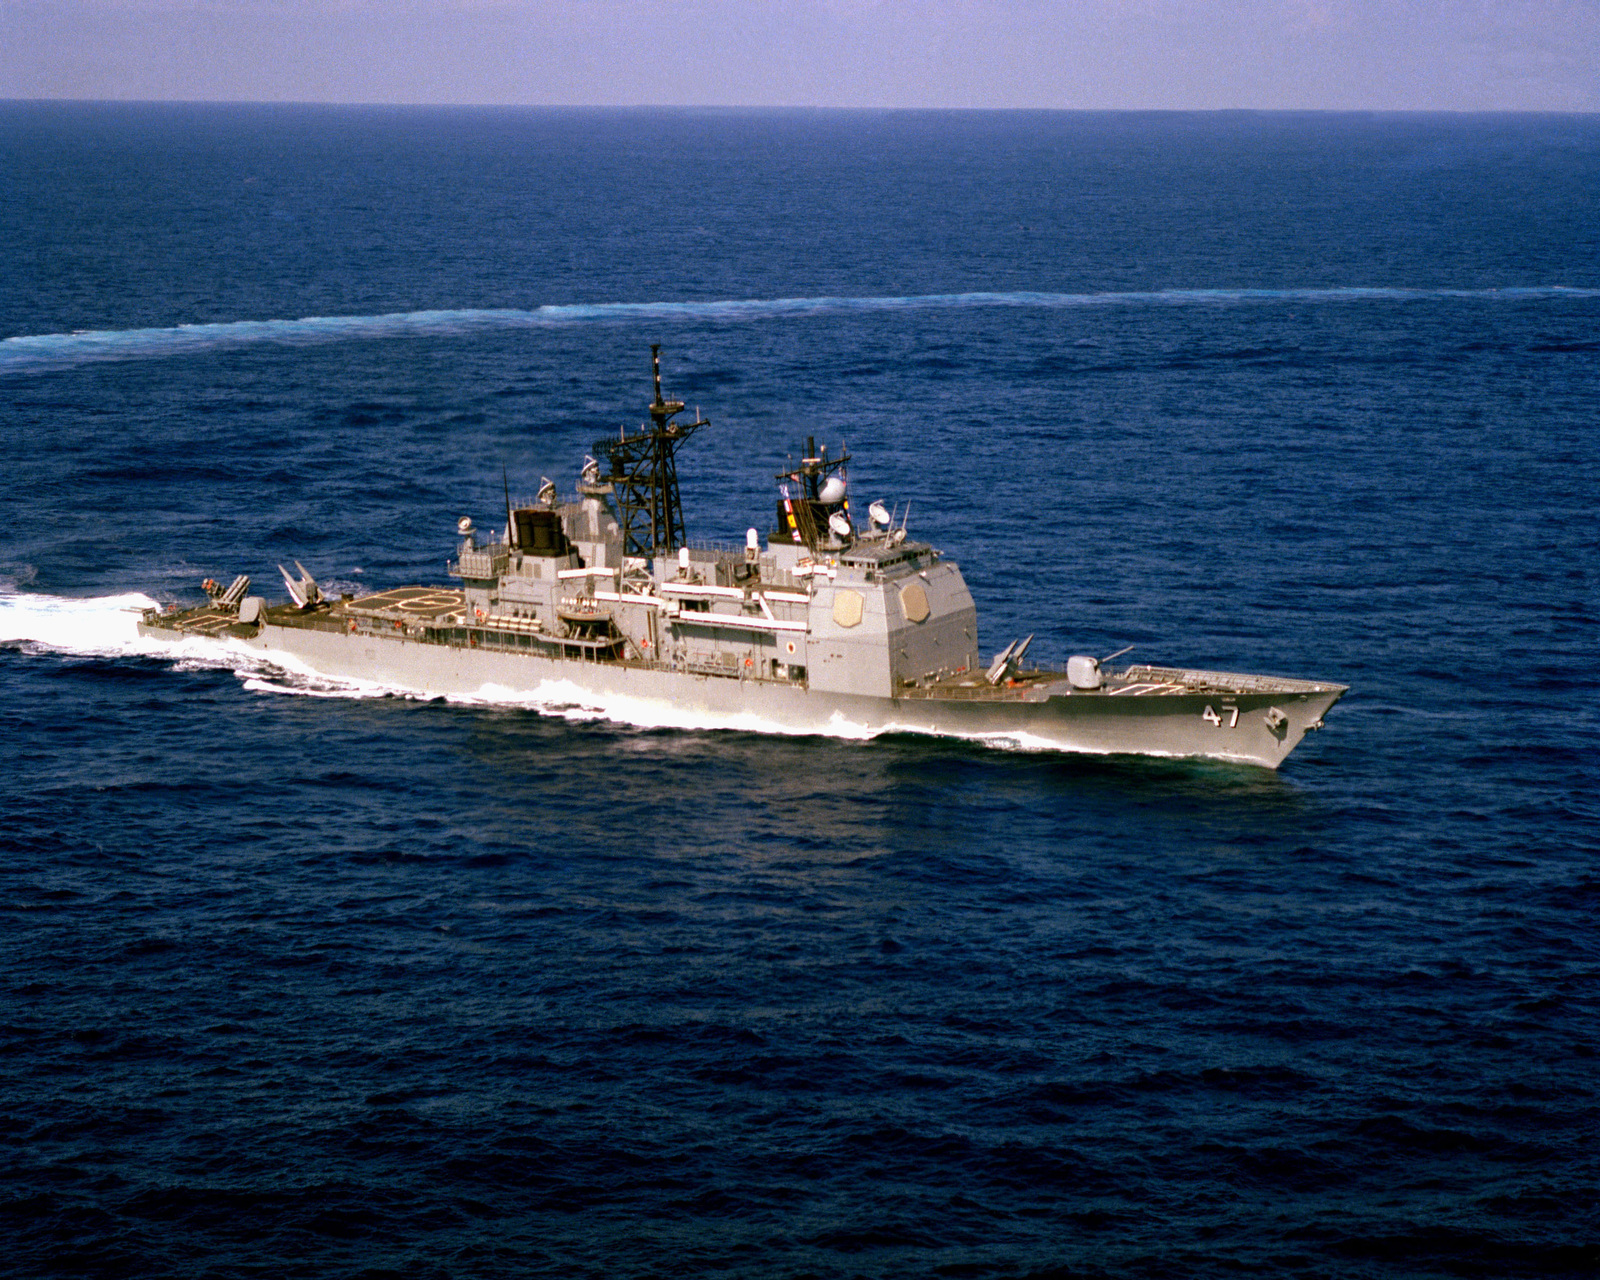 An aerial starboard bow view of the Aegis guided missile cruiser USS TICONDEROGA (CG 47) underway during Standard II missile tests near the Atlantic Fleet Weapon Training Facility, Roosevelt Roads, Puerto Rico